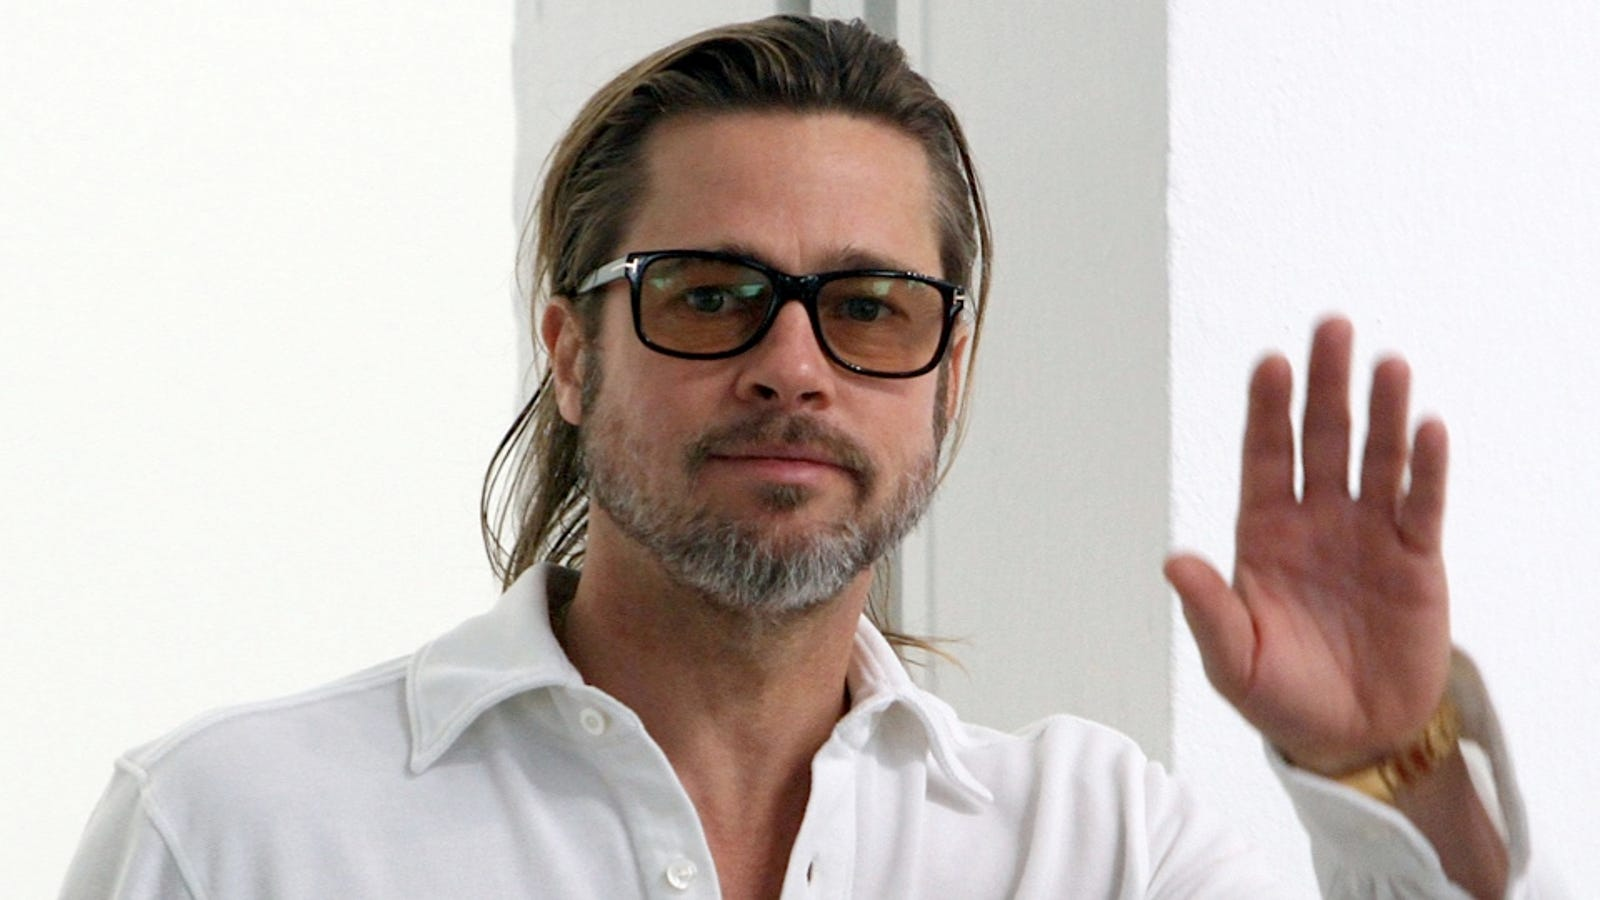 Brad Pitt Scientology